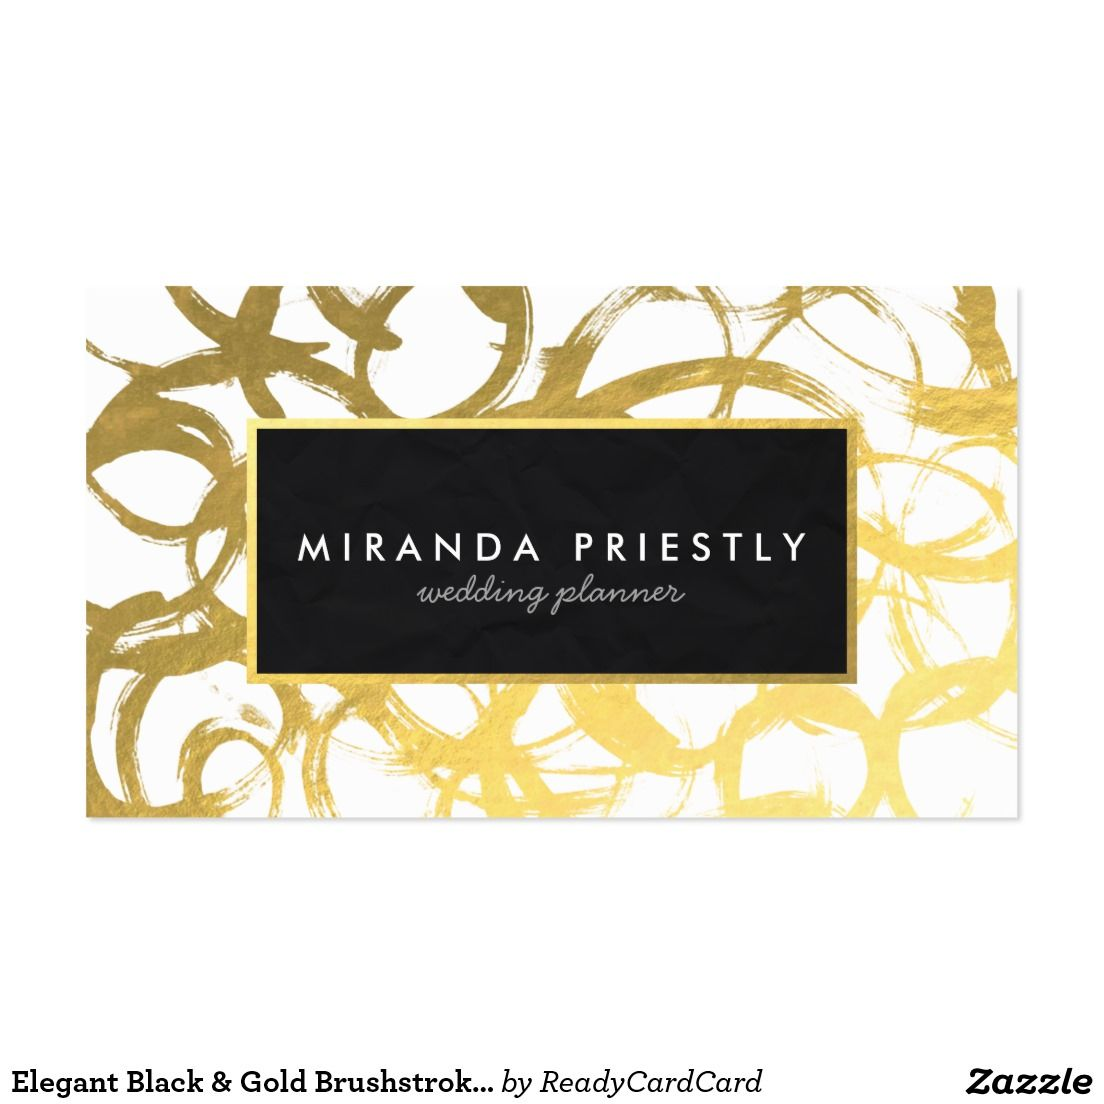 Elegant Black & Gold Brushstrokes Wedding Planner Business Card ...